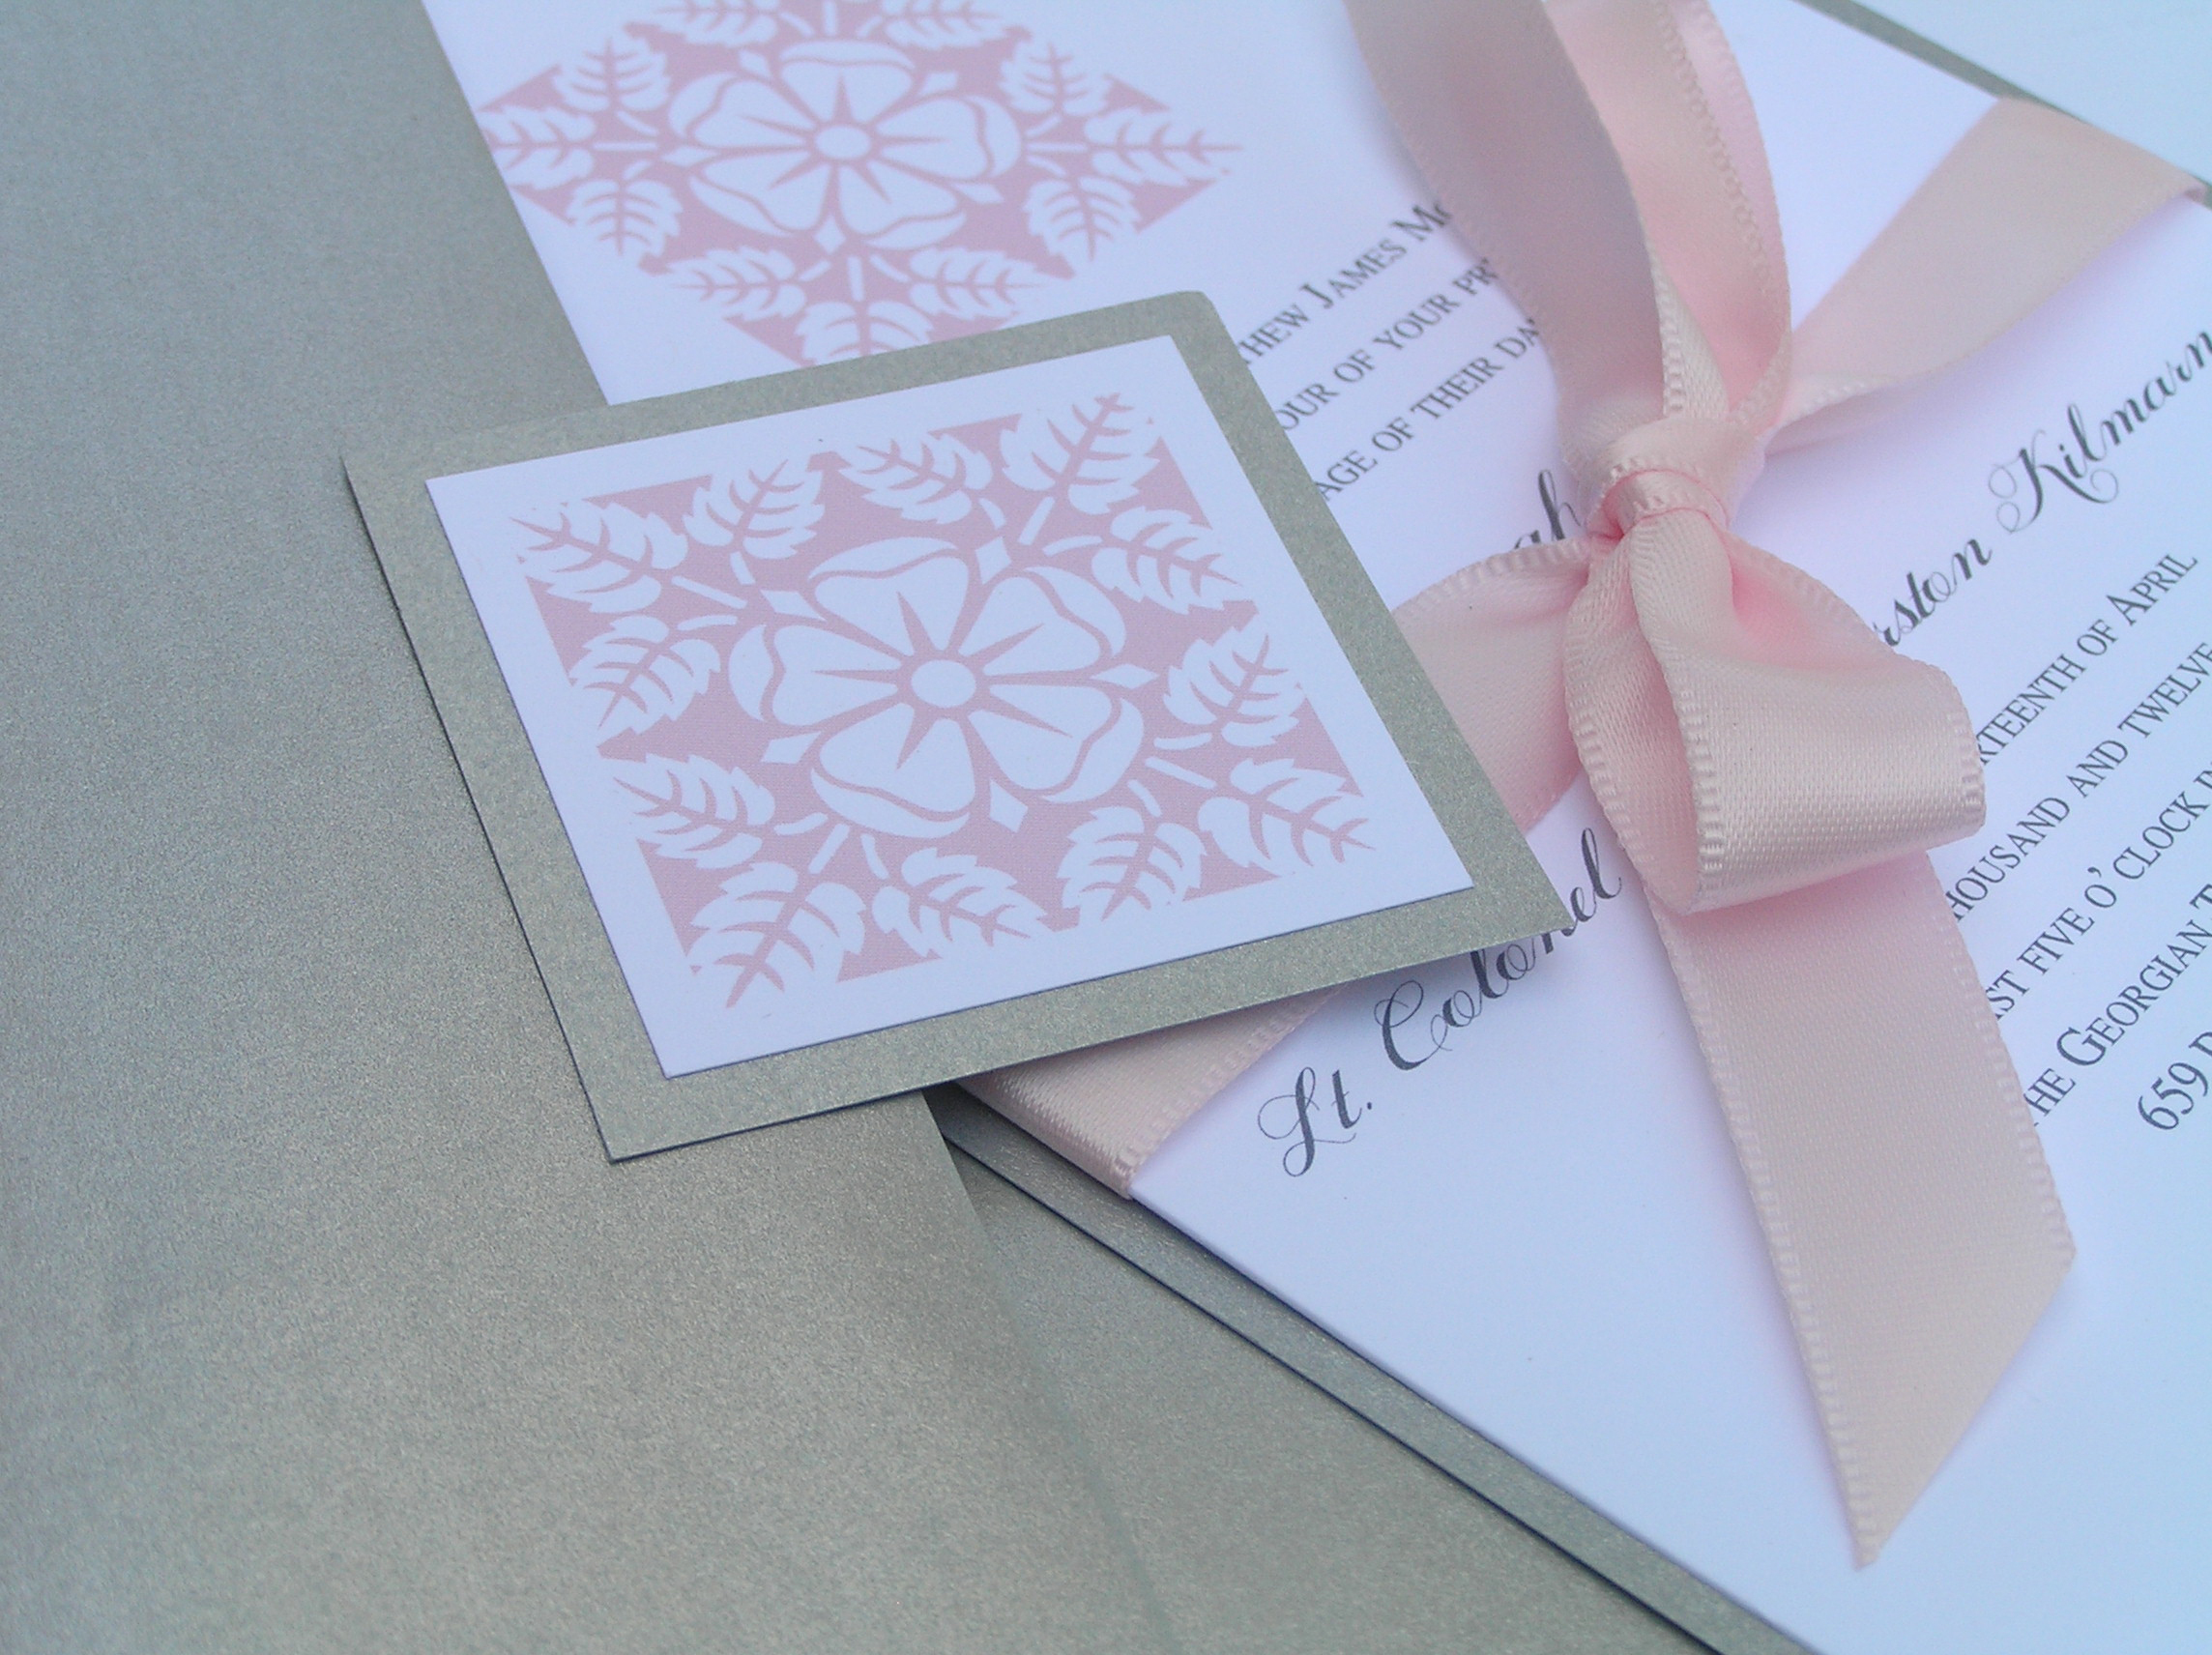 Inspiration, Stationery, white, pink, silver, invitation, Invitations, Wedding, Floral, Board, Layered, The write touch